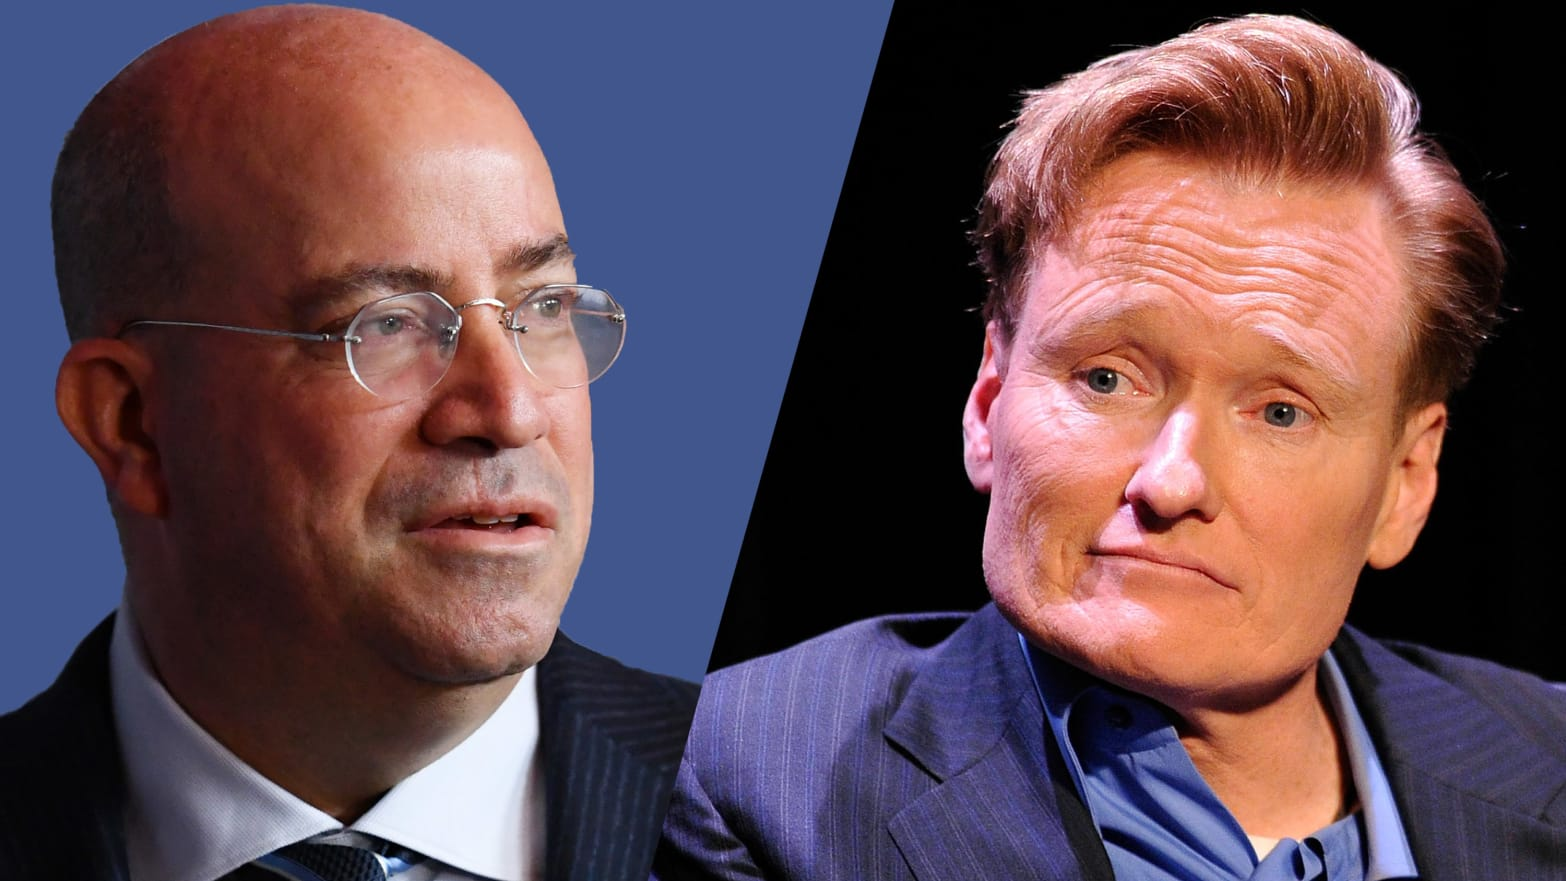 Conan O'Brien Takes a Shot at His Old Nemesis Jeff Zucker